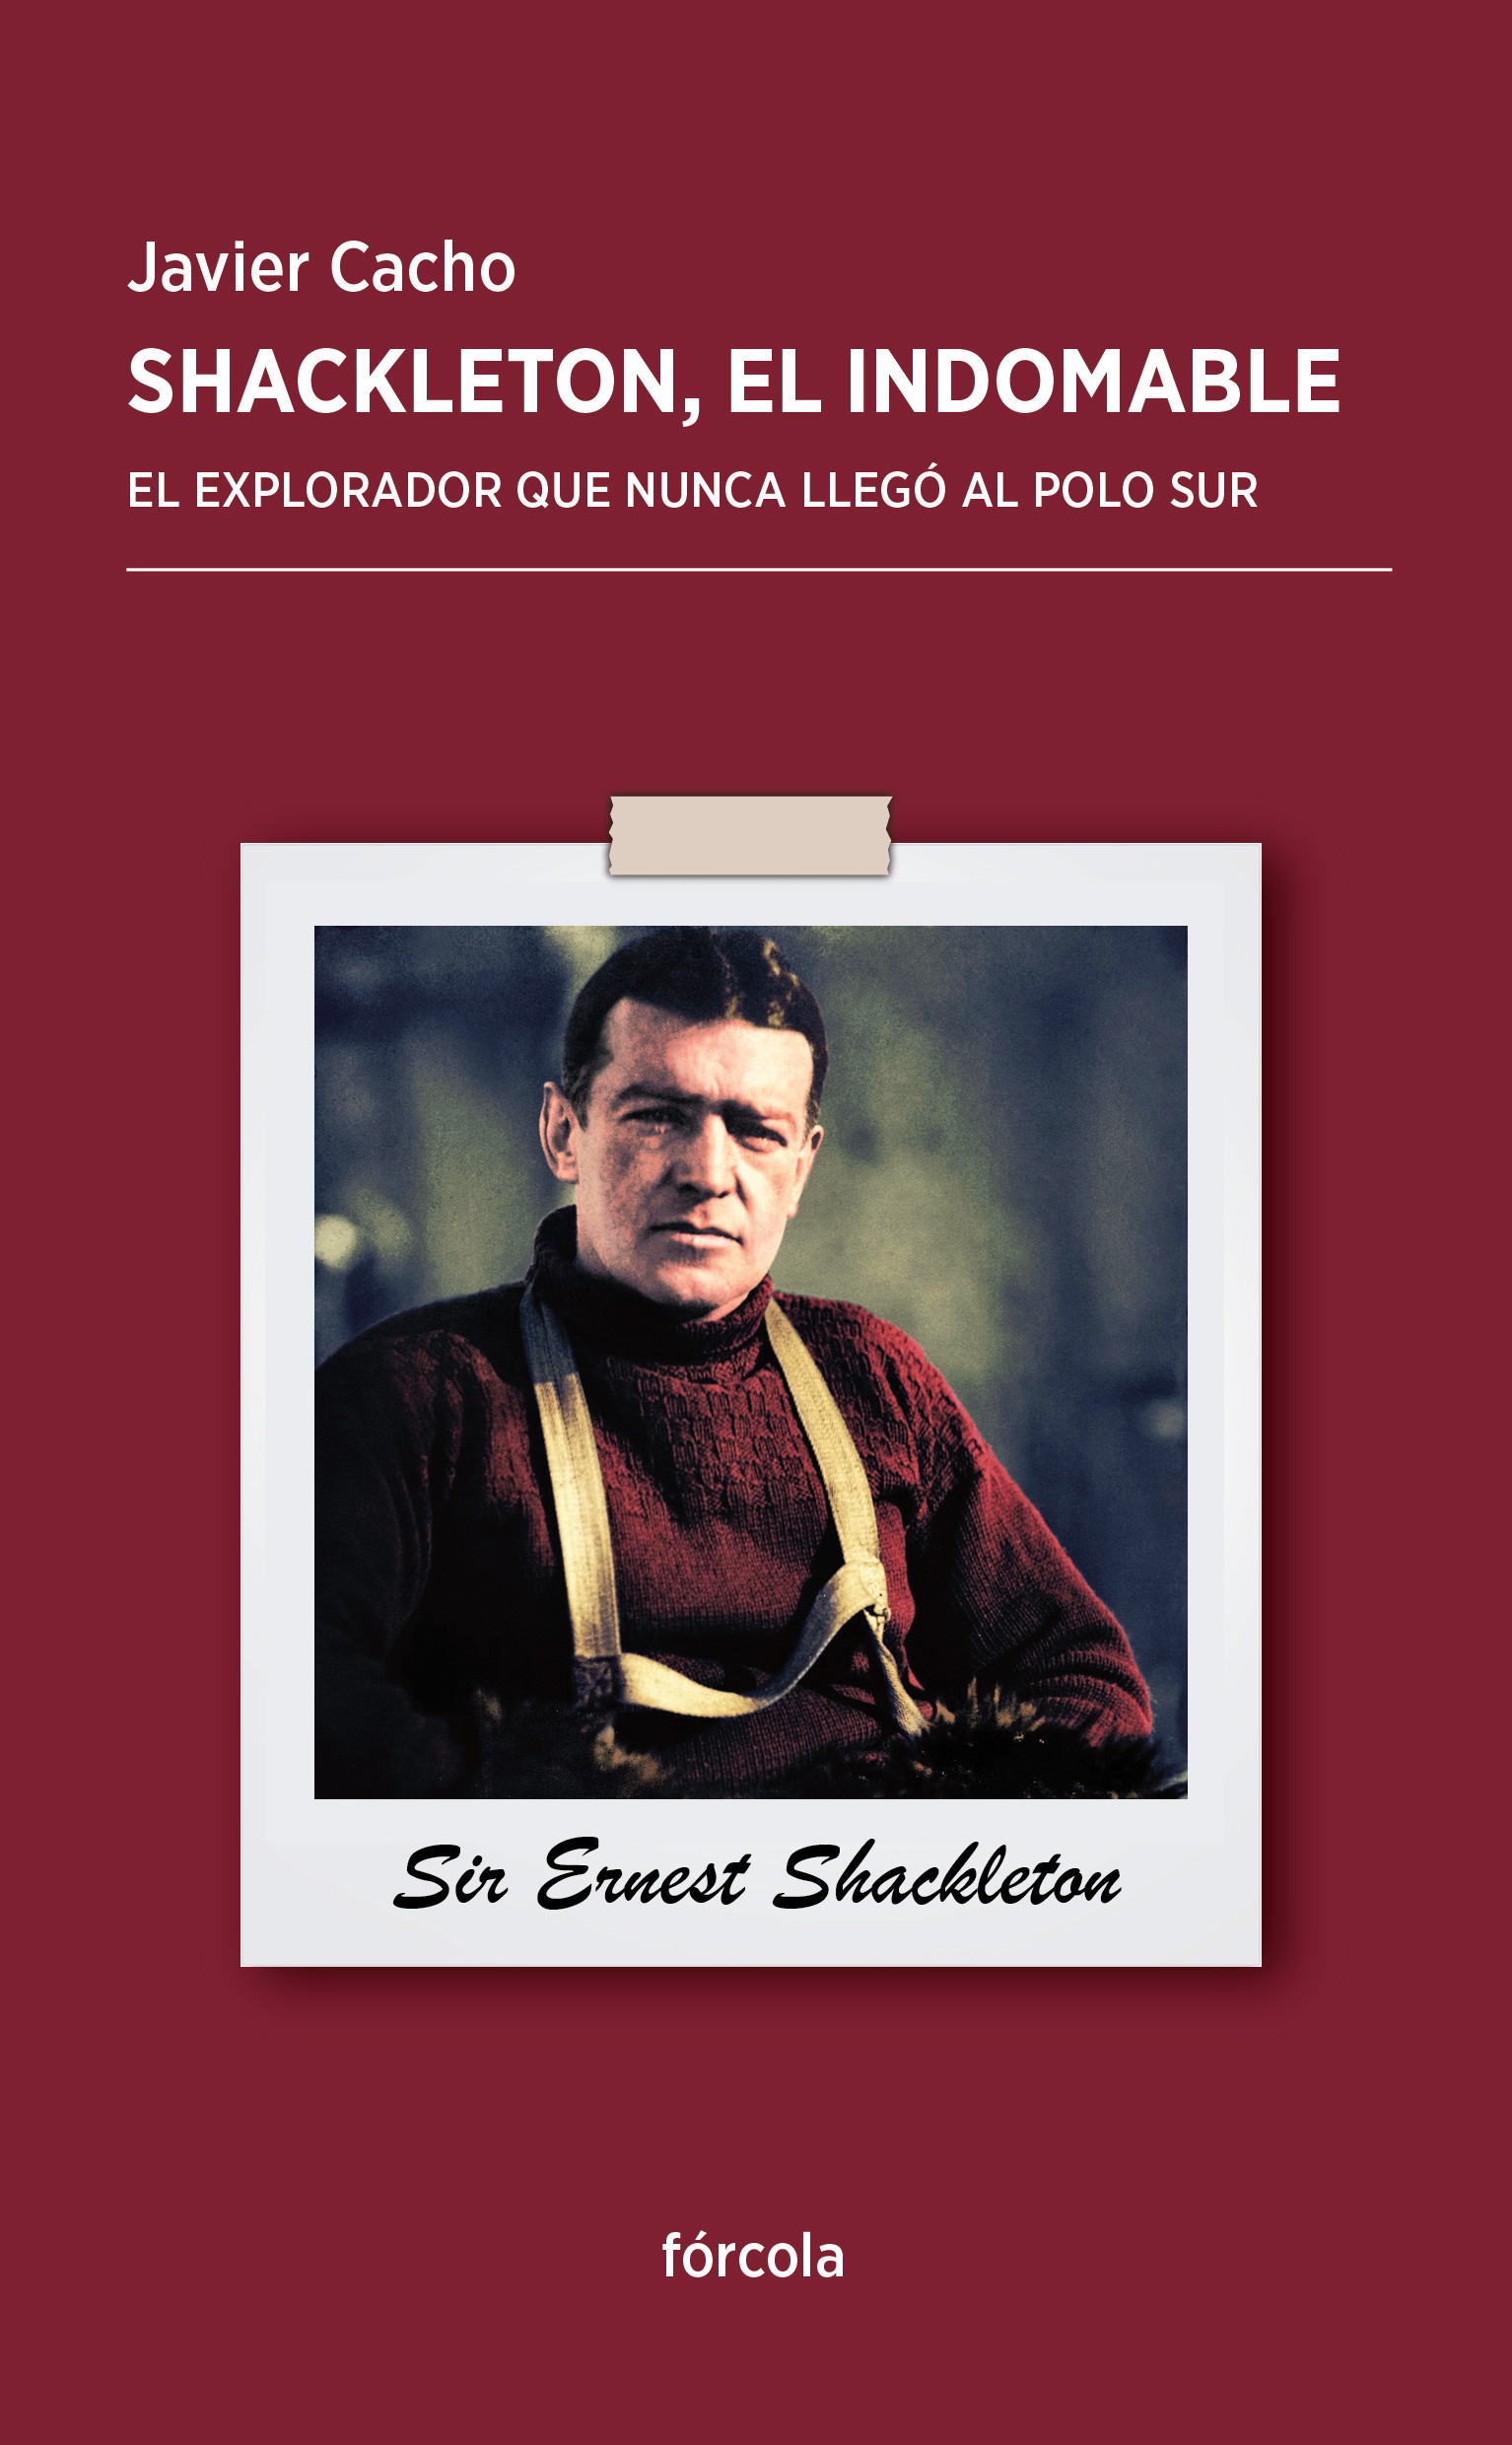 SHACKLETON, EL INDOMABLE - Javier Cacho Gómez